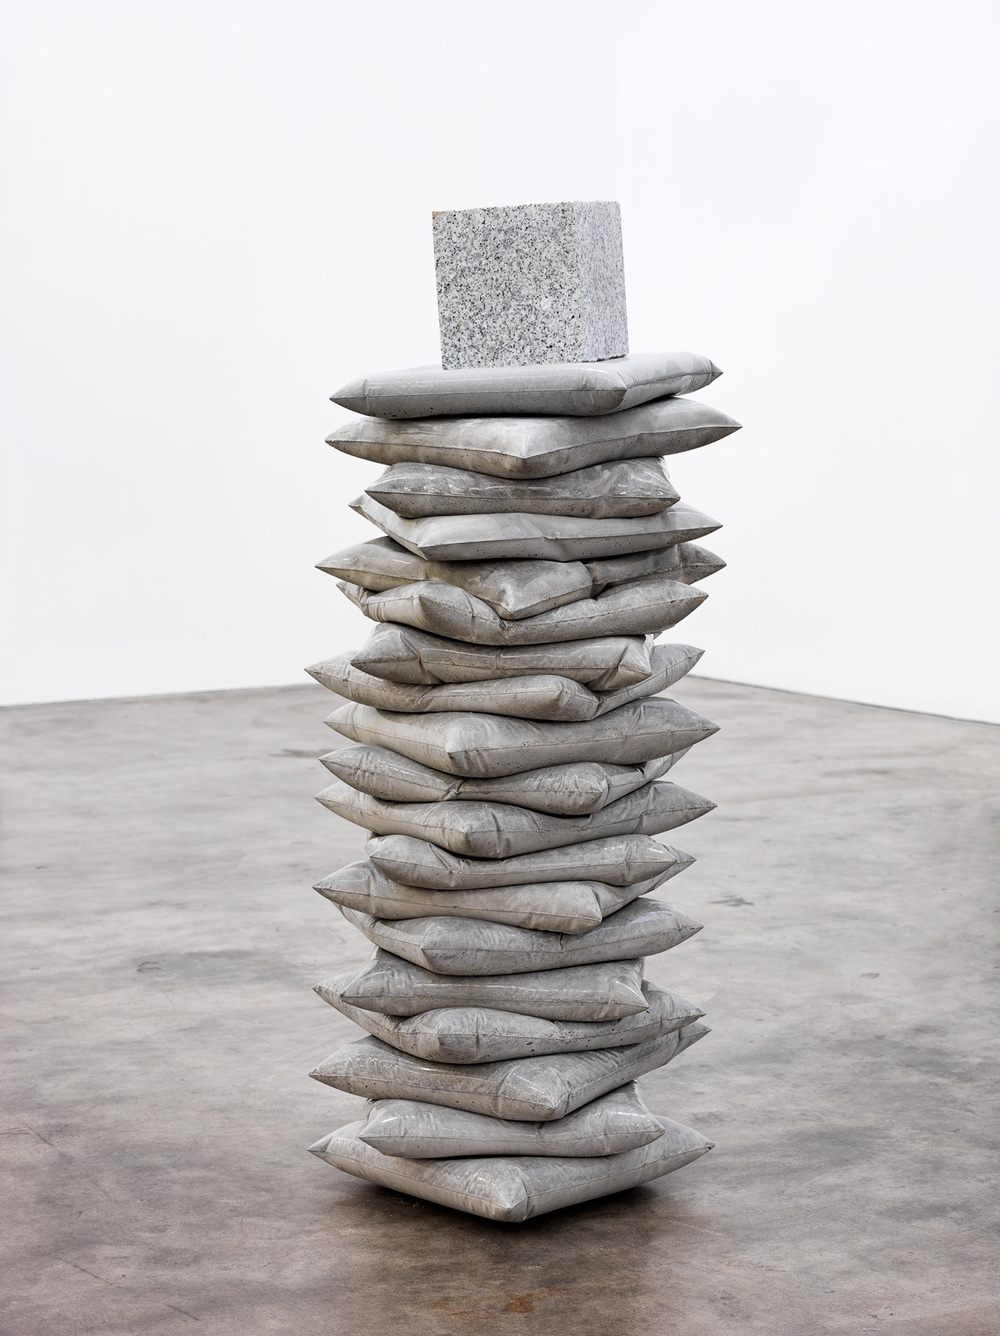 Anna Horne,    Mould , 2015, C oncrete, stone, 110cm x 30cm x 30cm . Photograph by Grant Hancock. Courtesy of the artist and GAG Projects.